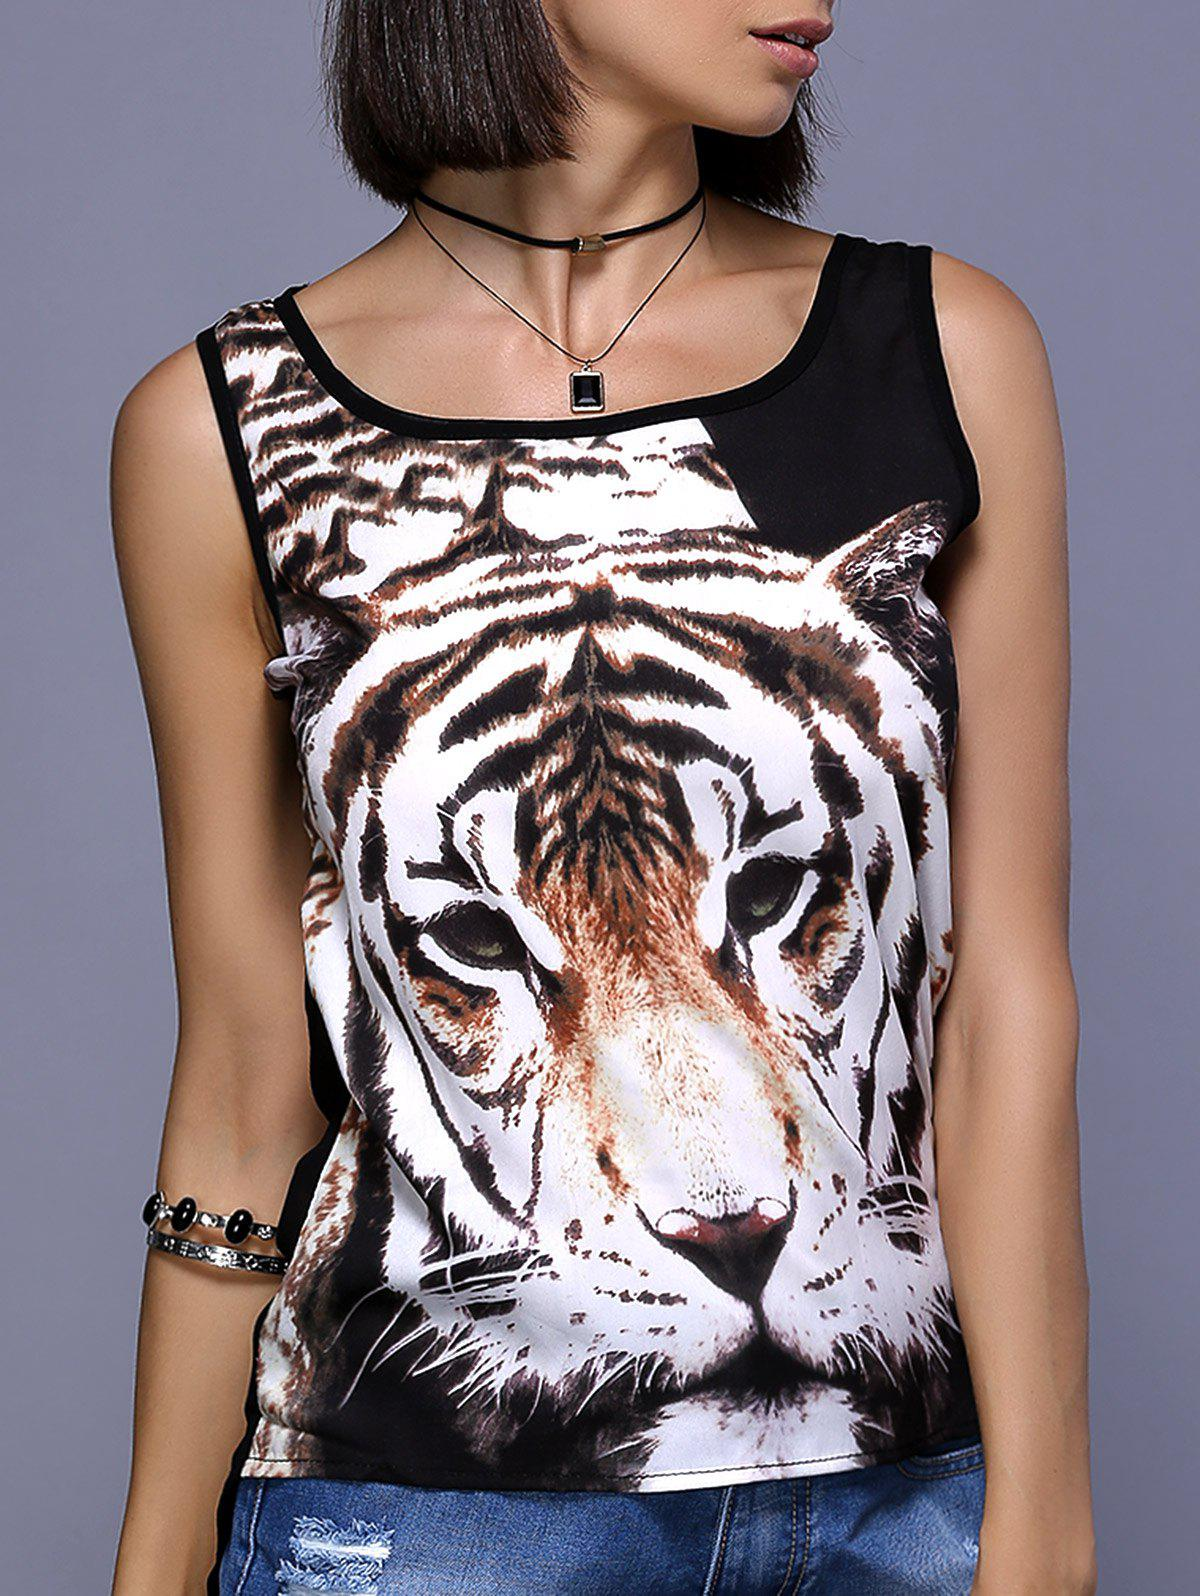 Stylish Tiger Print Chiffon Tank Top For Women - BLACK XL